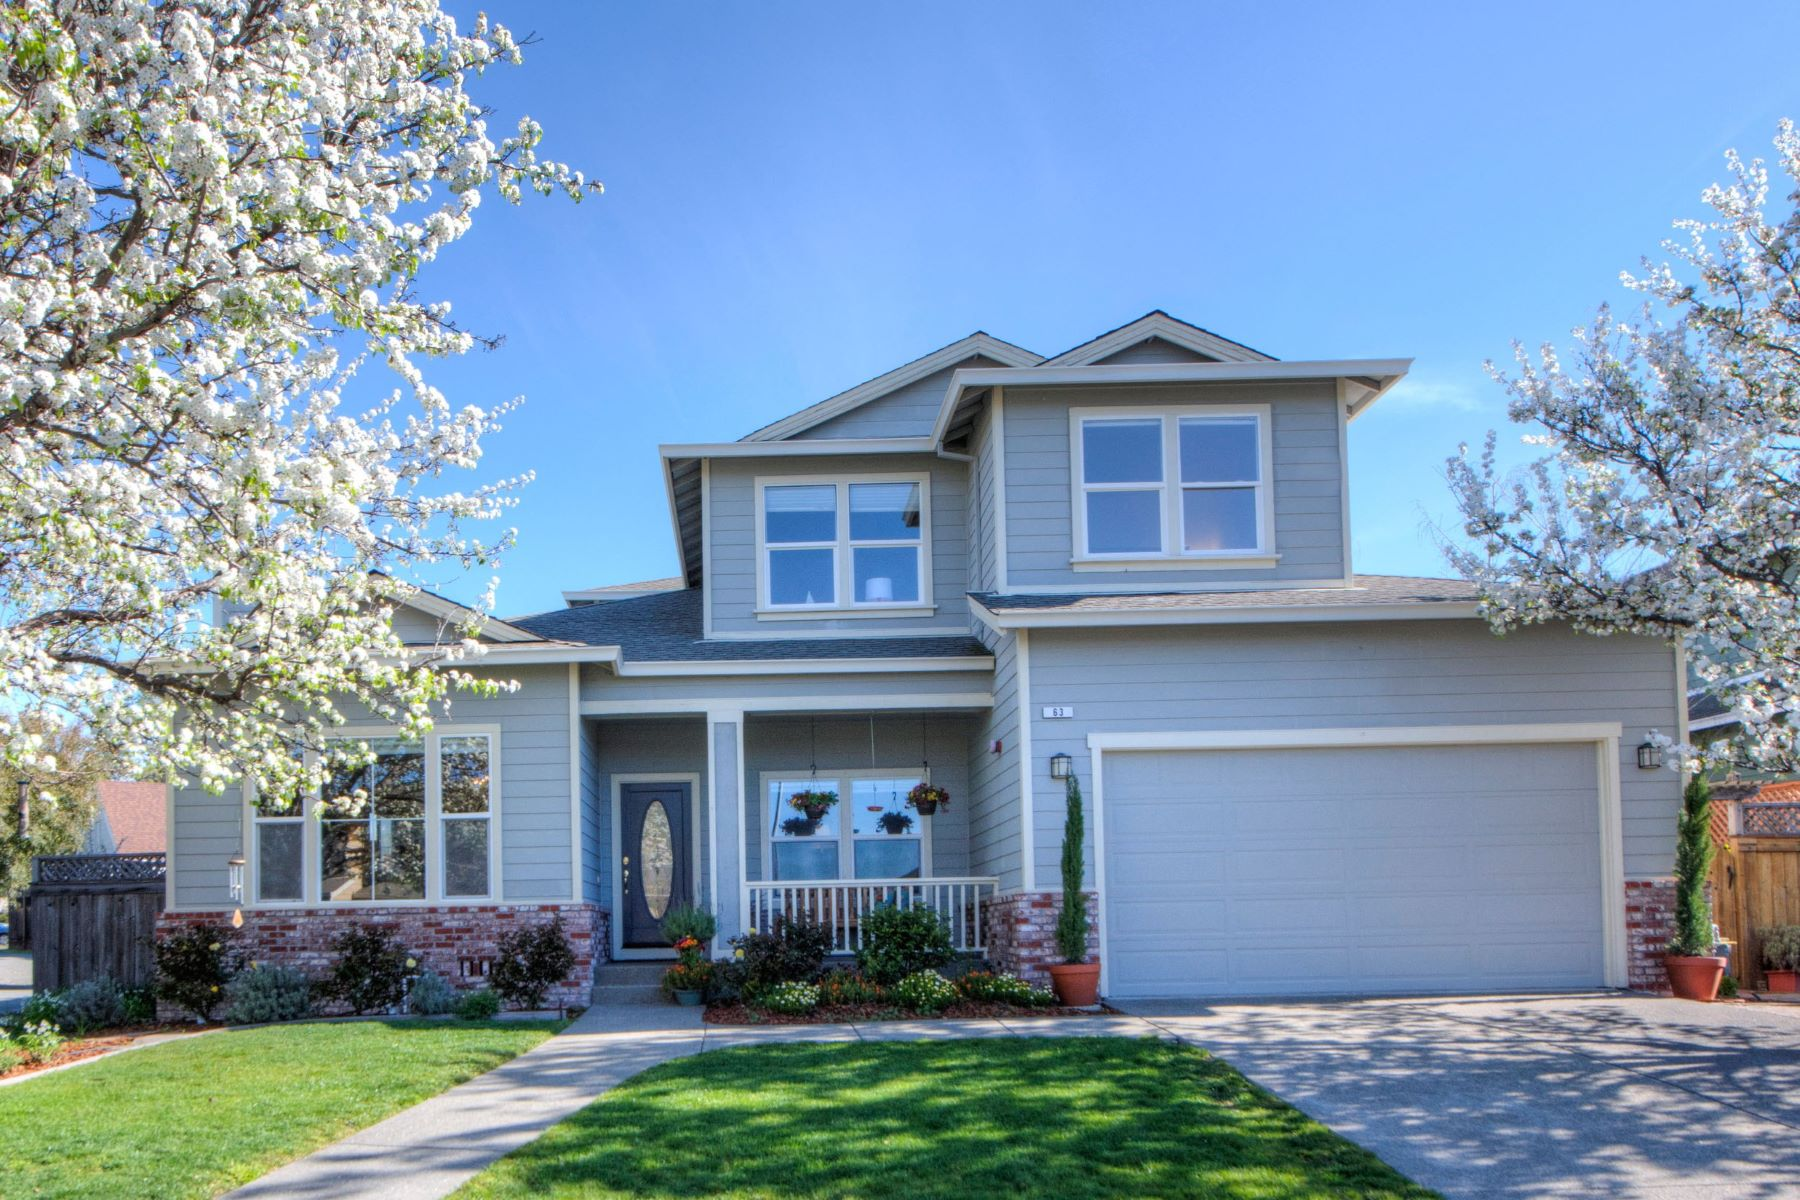 Single Family Home for Sale at Captivating Large 1998 Traditional Home 63 Montevideo Way San Rafael, California, 94903 United States